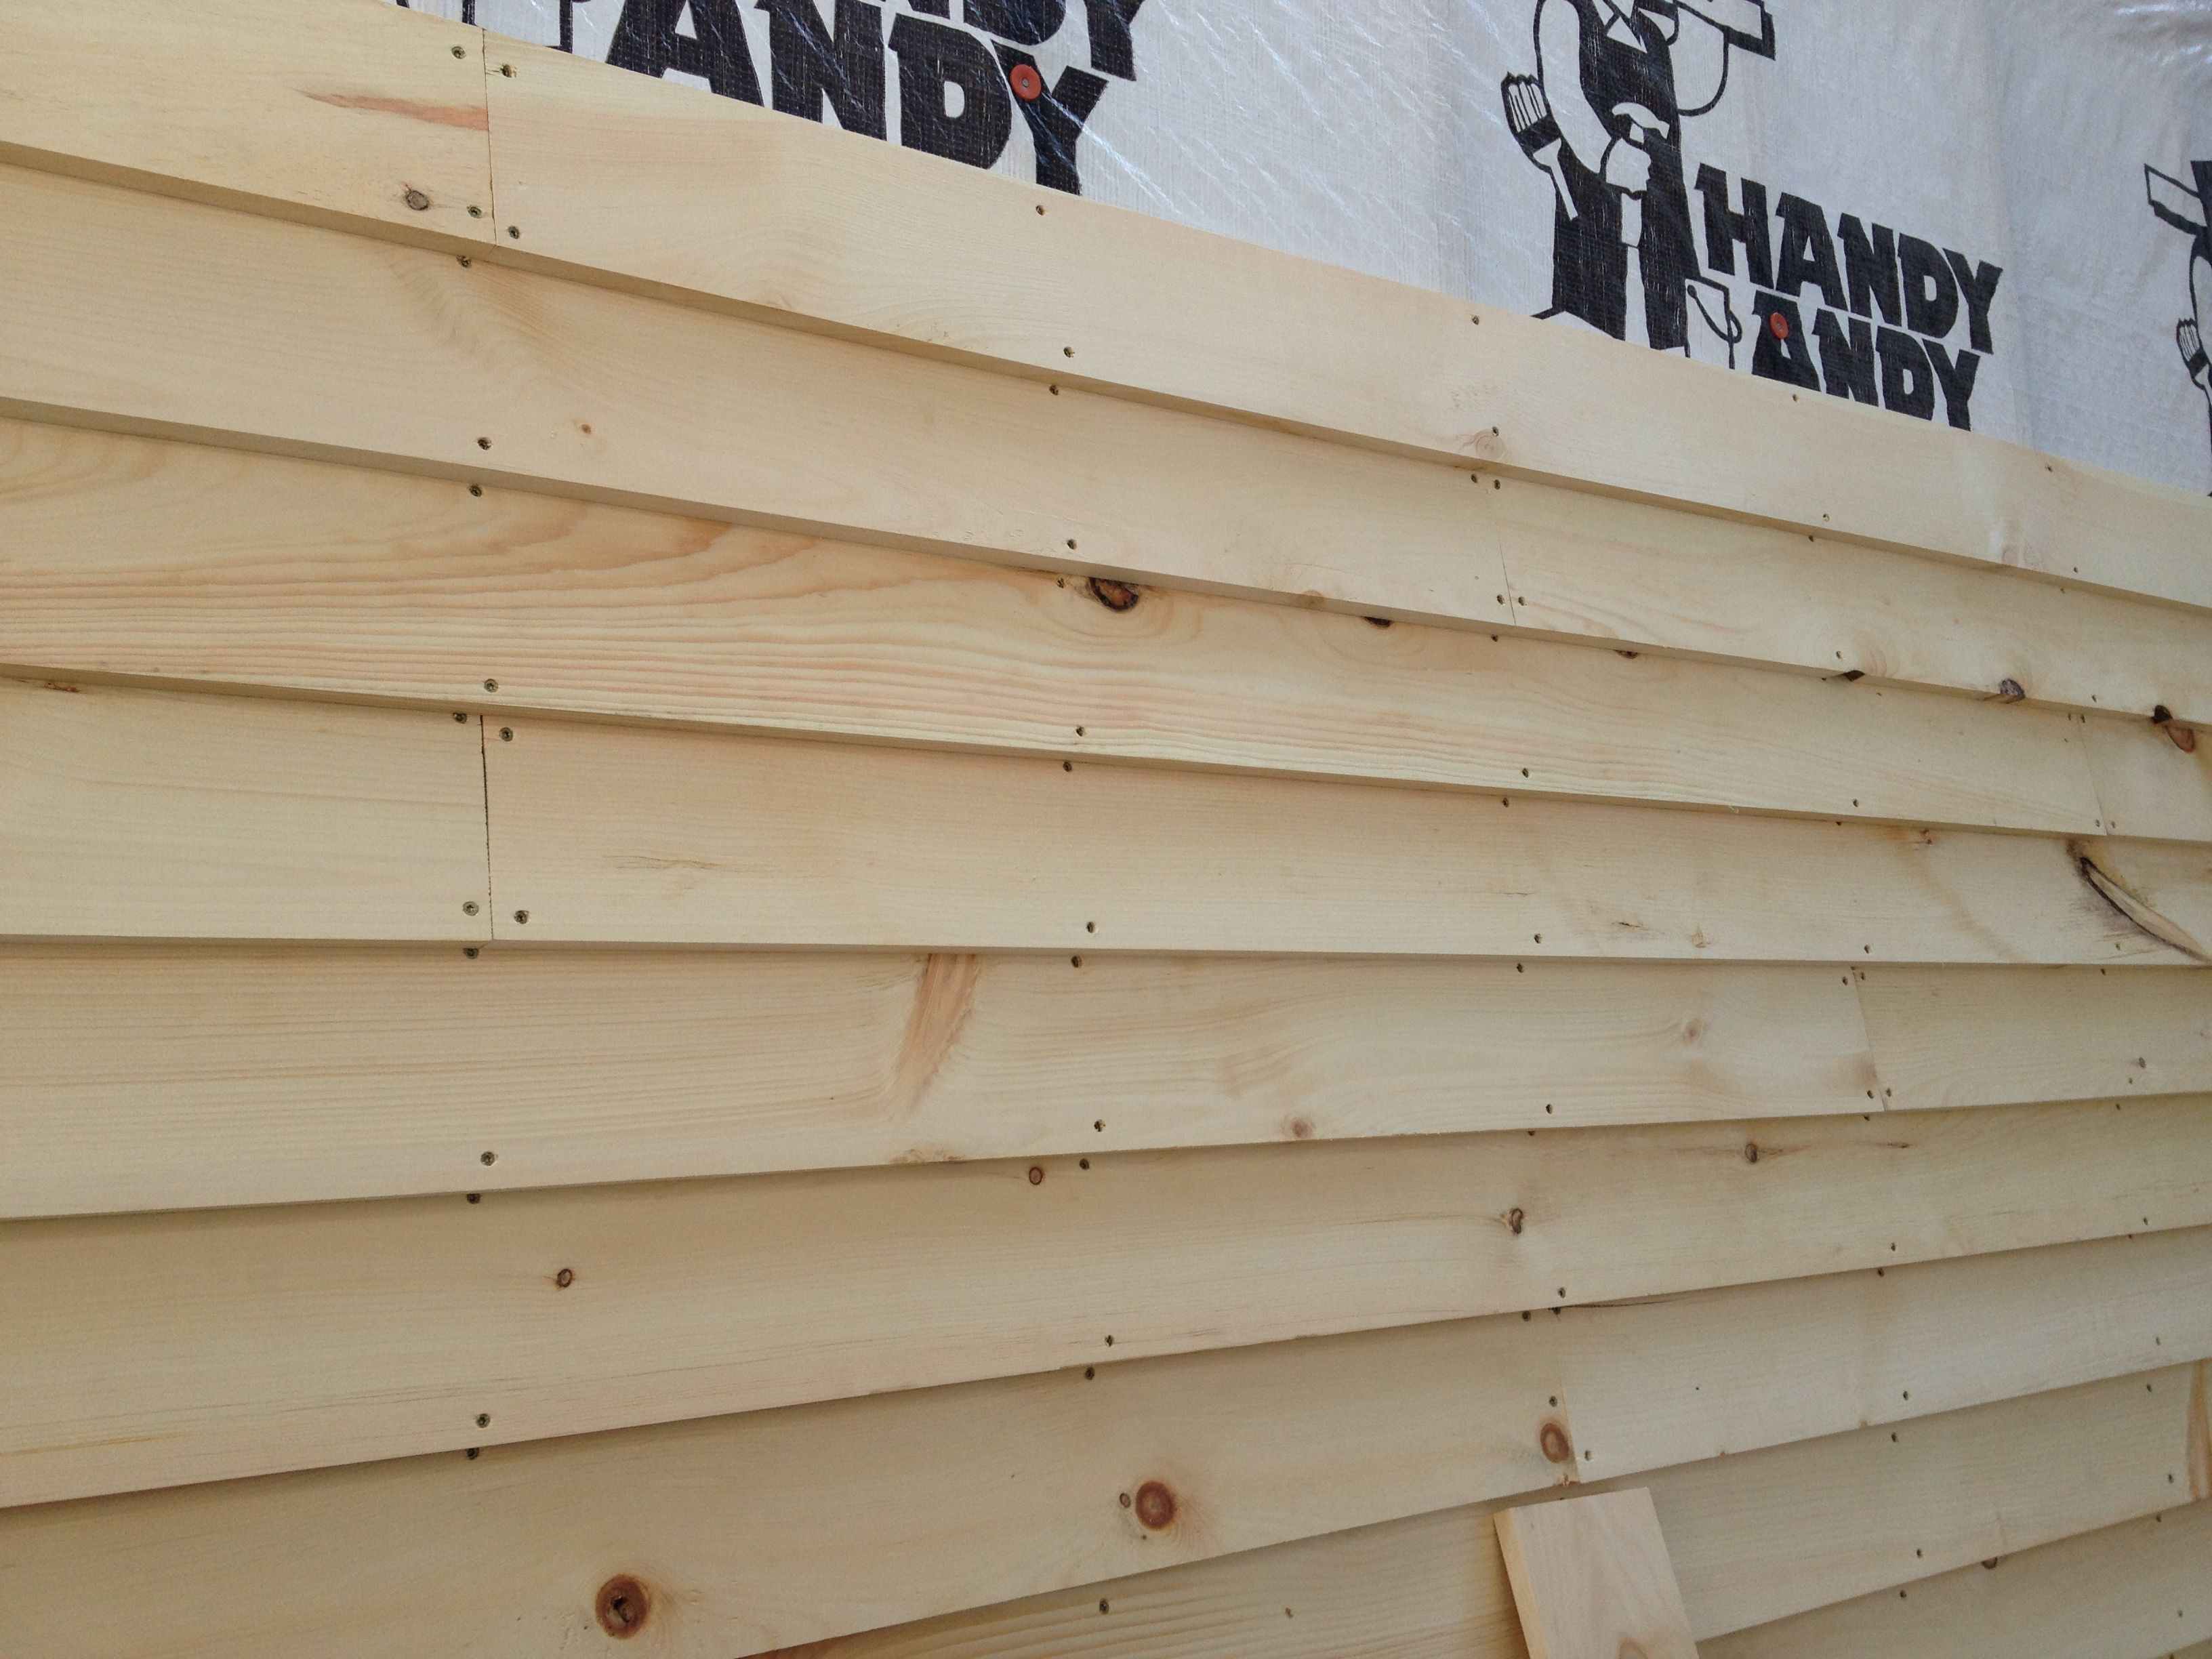 Pine Siding The Siding Going Up We Used 1x6 Pine Lap Siding Denise And